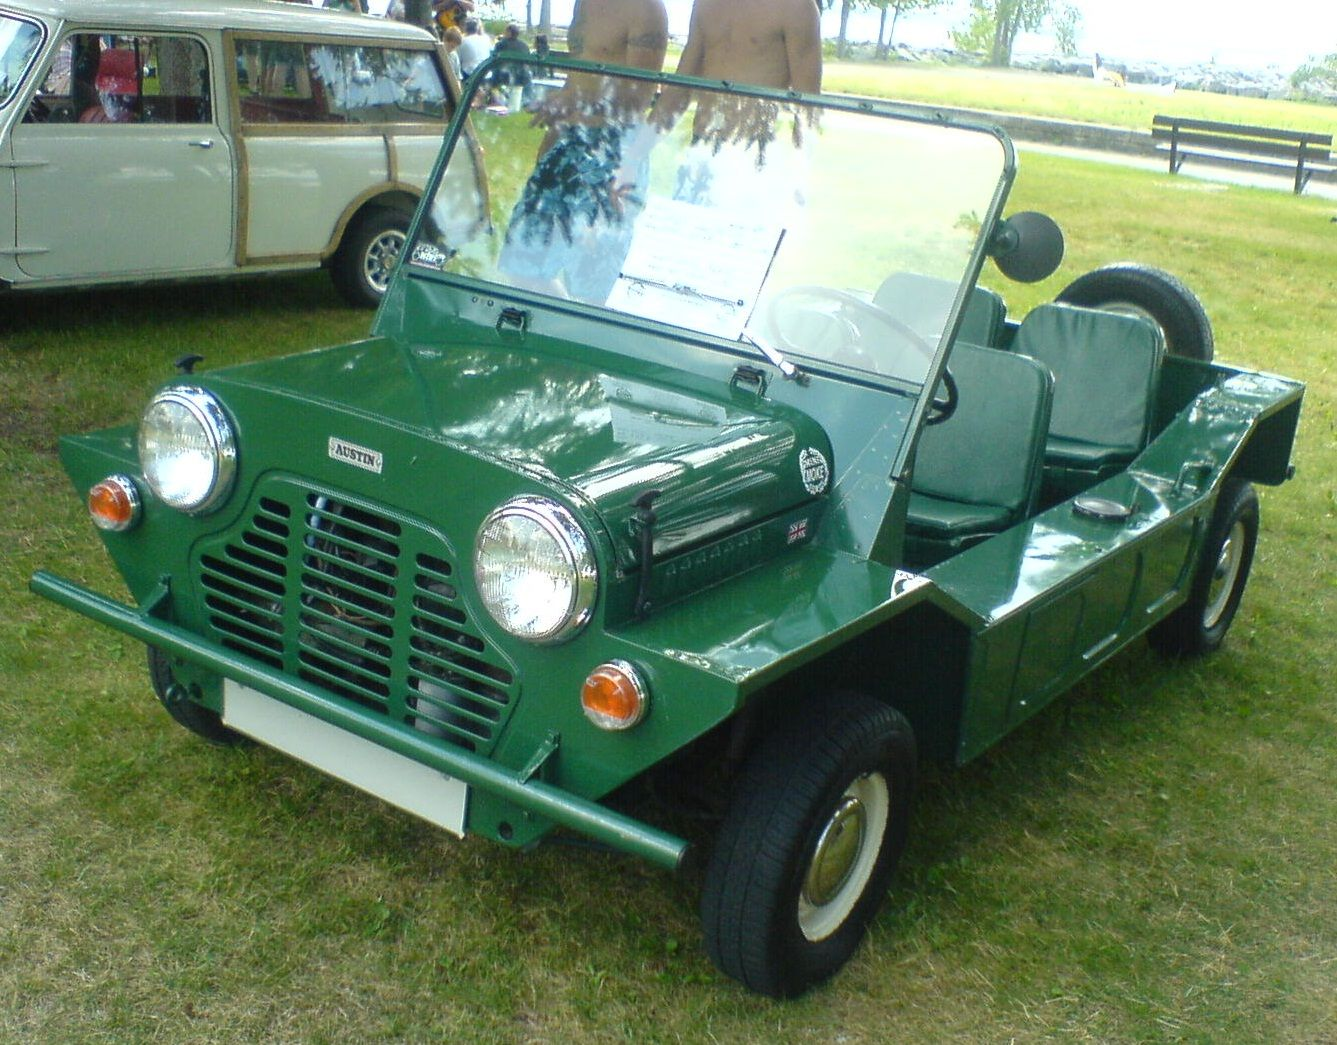 classic british cars - Google Search | MAQUETTES VOITURES STOCK ...